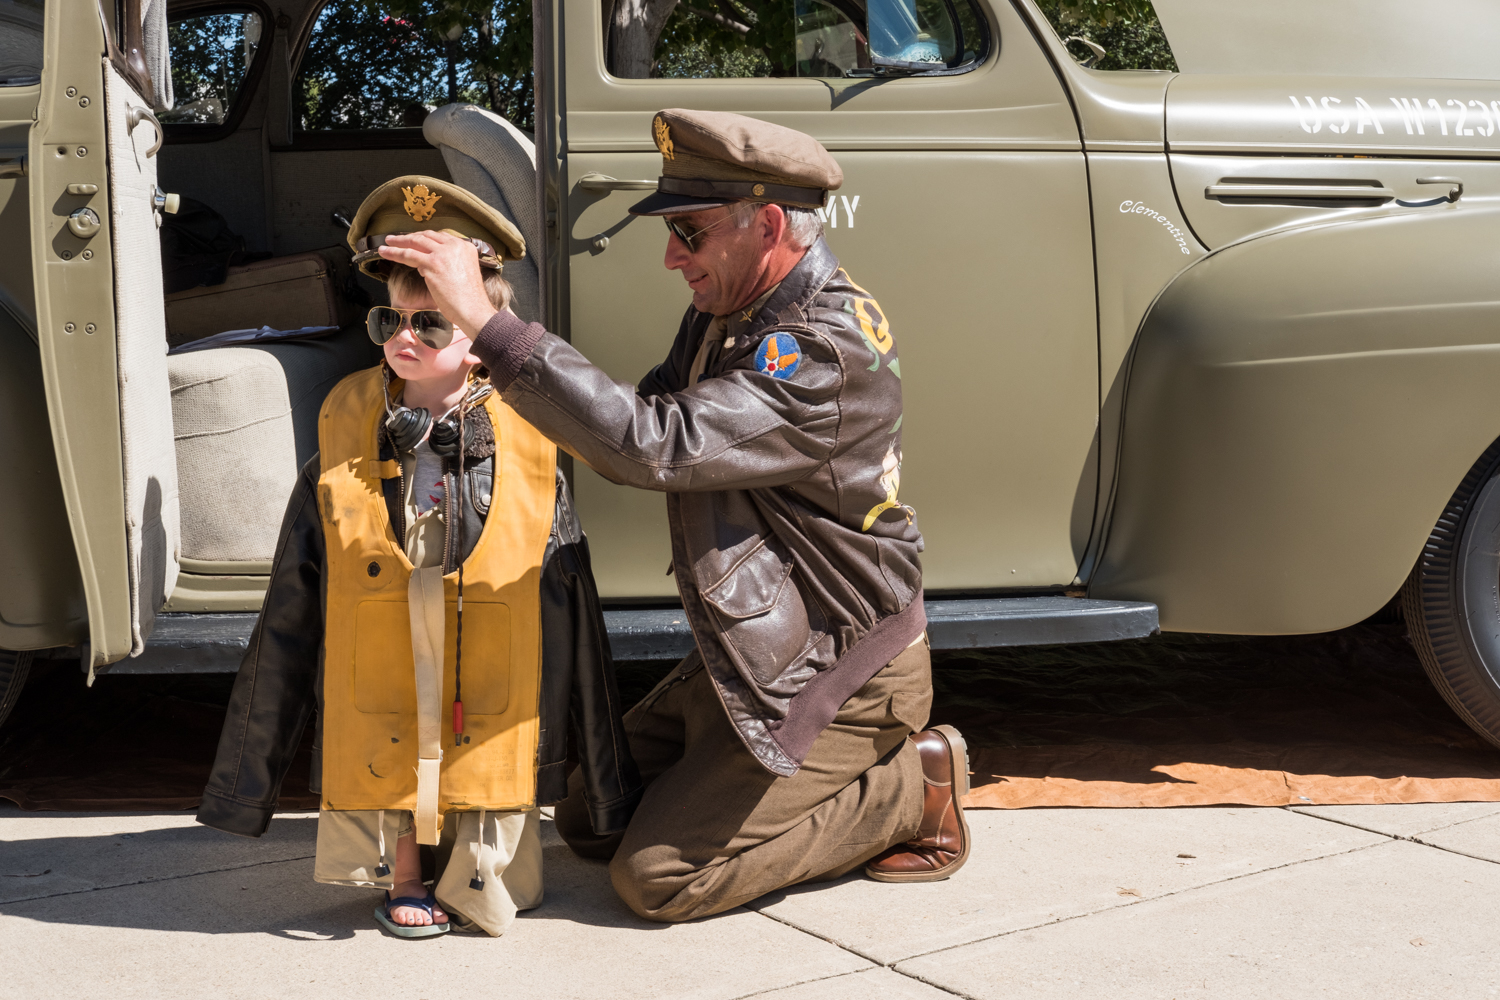 """Chris Gabers, a war re-enactor with the Allied Airmen's Preservation Society, dresses Kenneth Blasi in Army attire near the World War II Memorial in Washington, D.C. during an Honor Flight event. Honor Flight is when veterans from around America visit the memorials on The National Mall. Kenneth's grandfather, C Patrick McCourt, is a veteran and part of the U.S. Park Service """"Living History."""""""